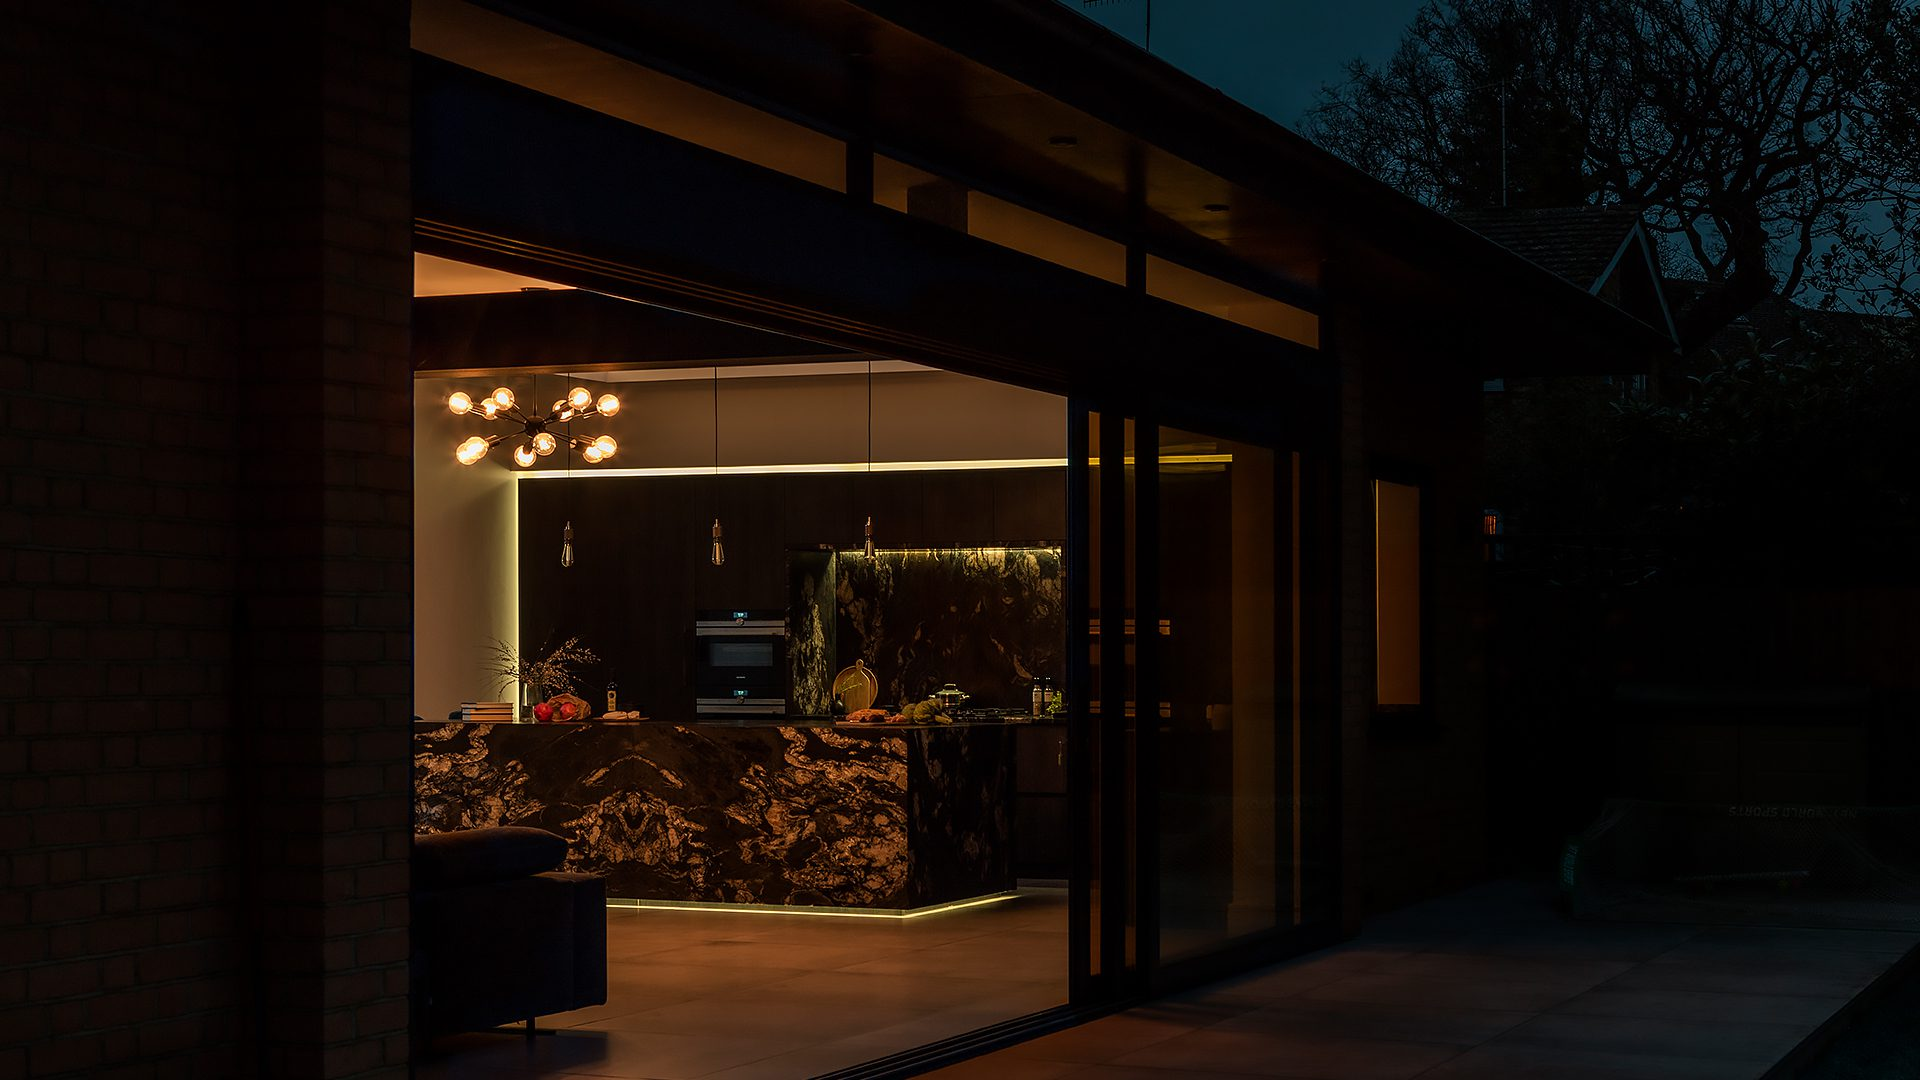 Black Kitchen Extension at night